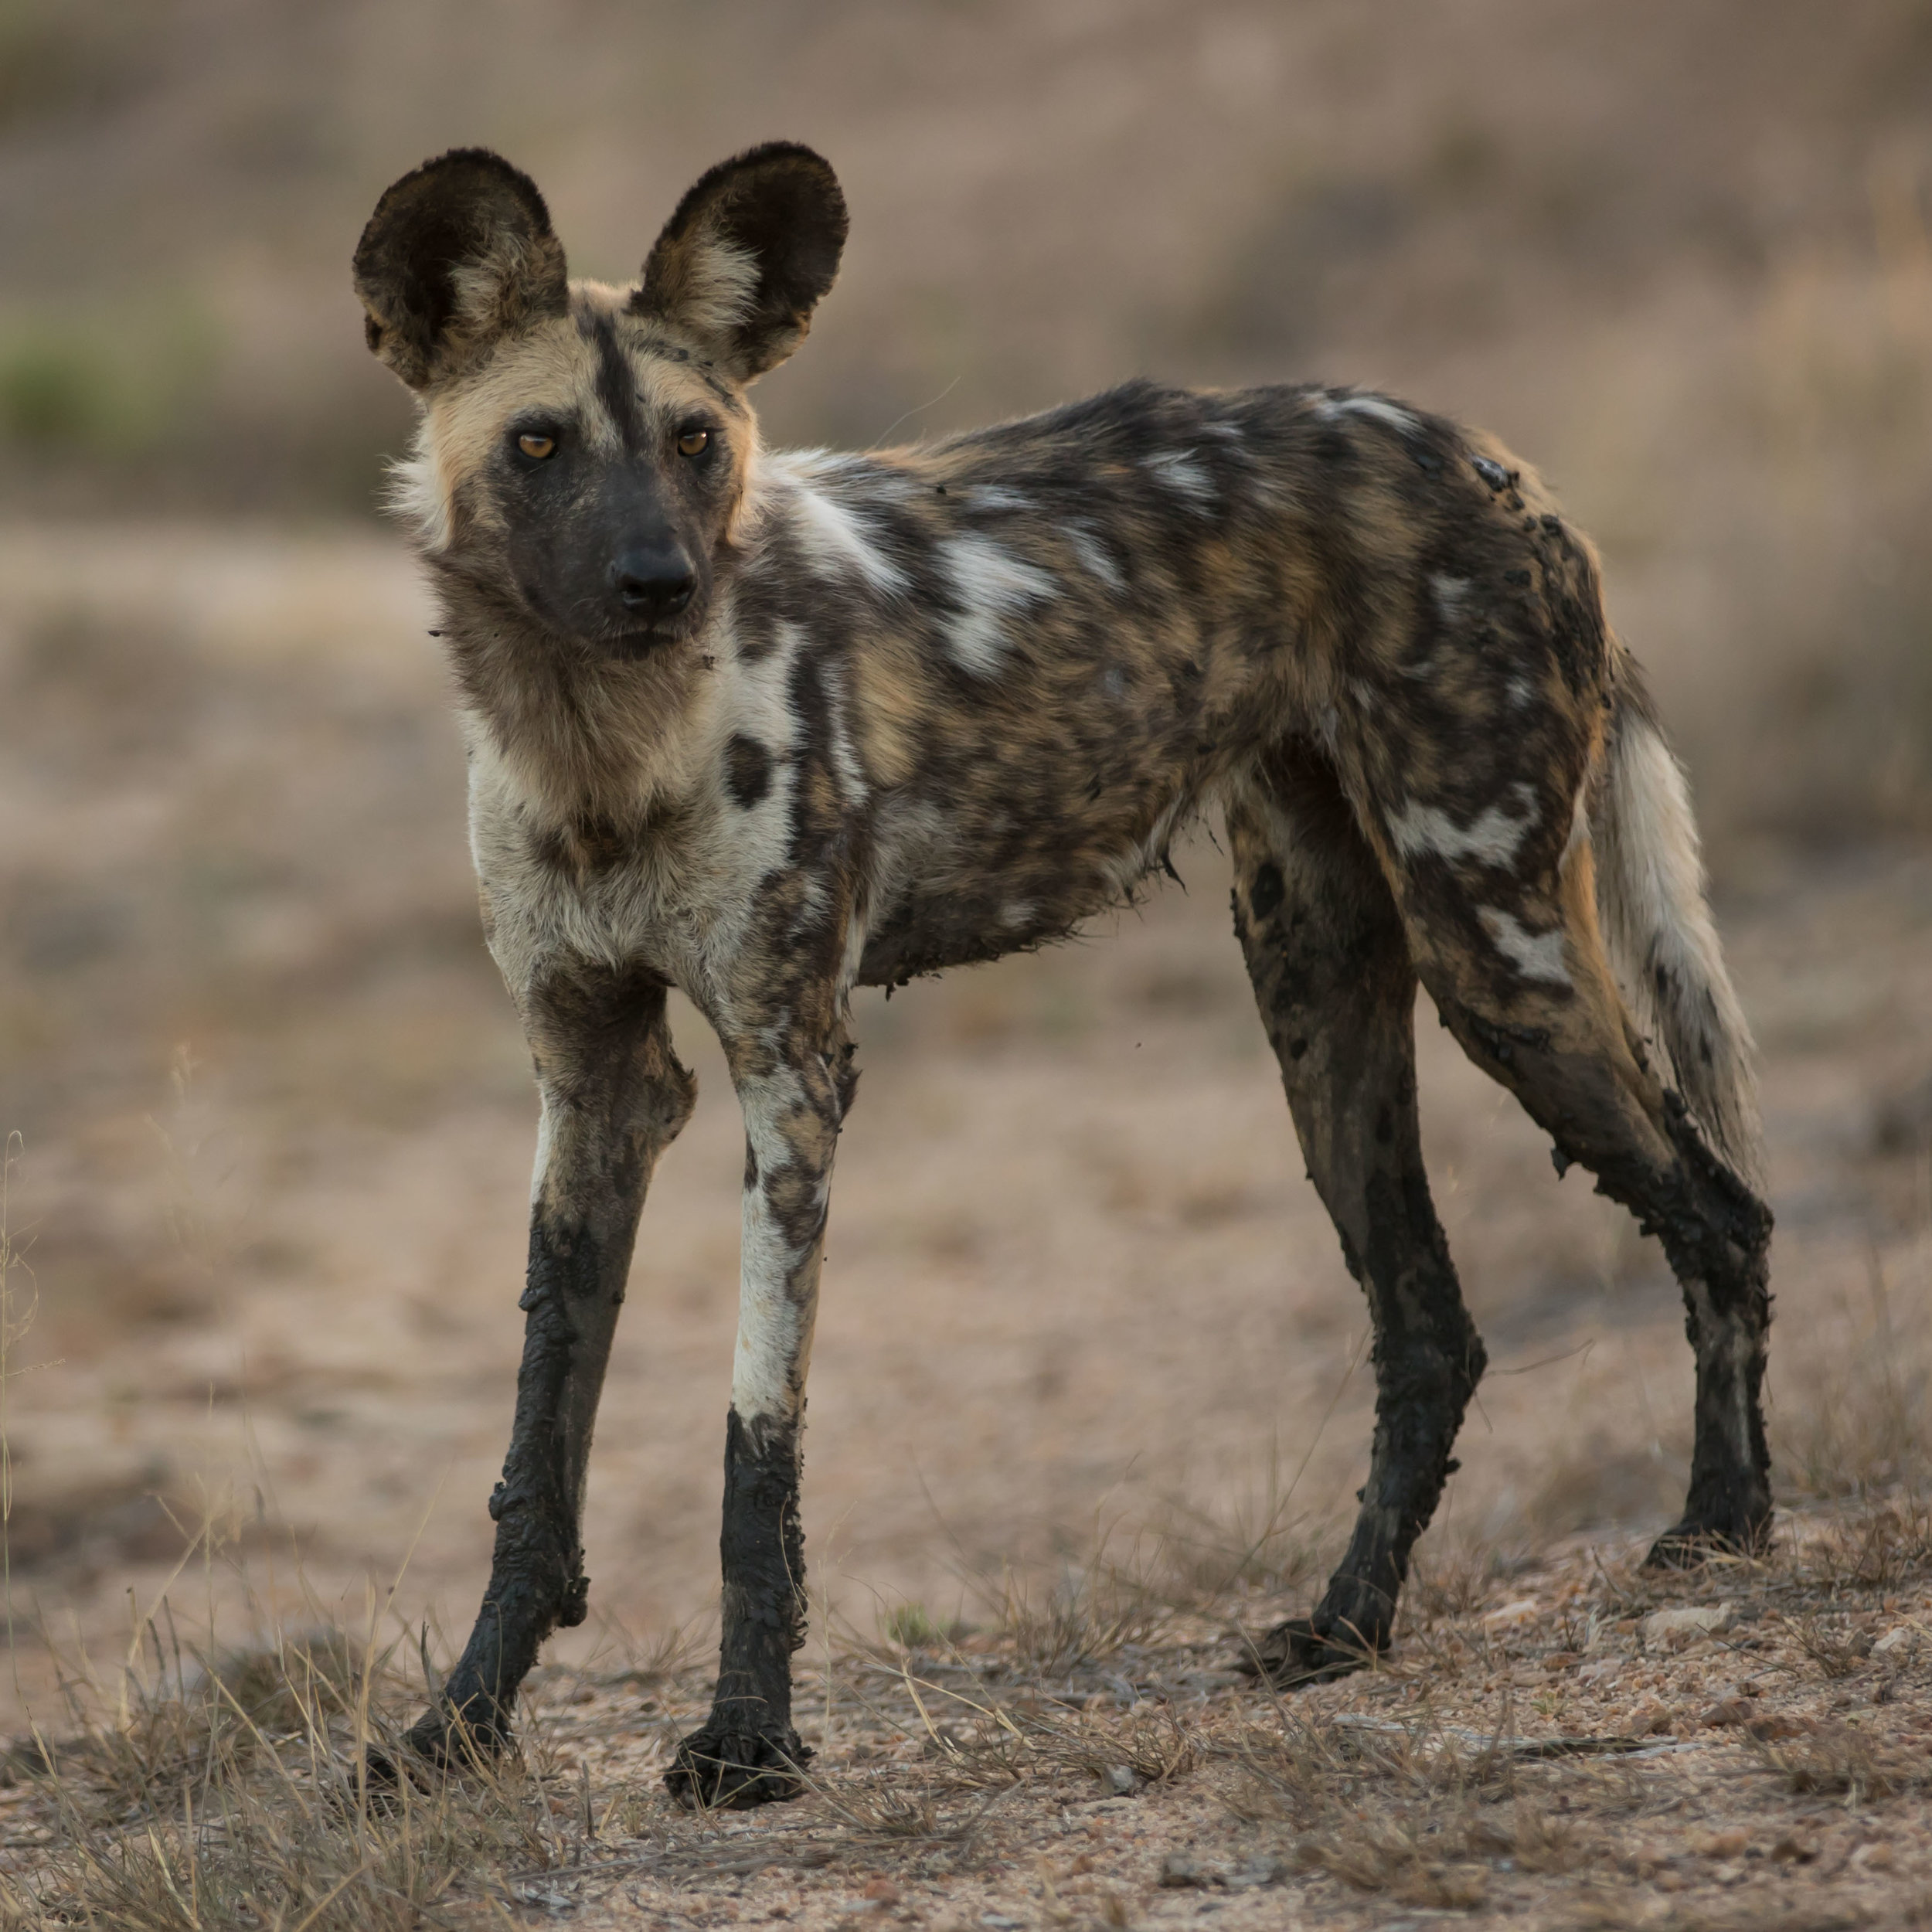 An African wild dog looks with intent at one of its pack members.